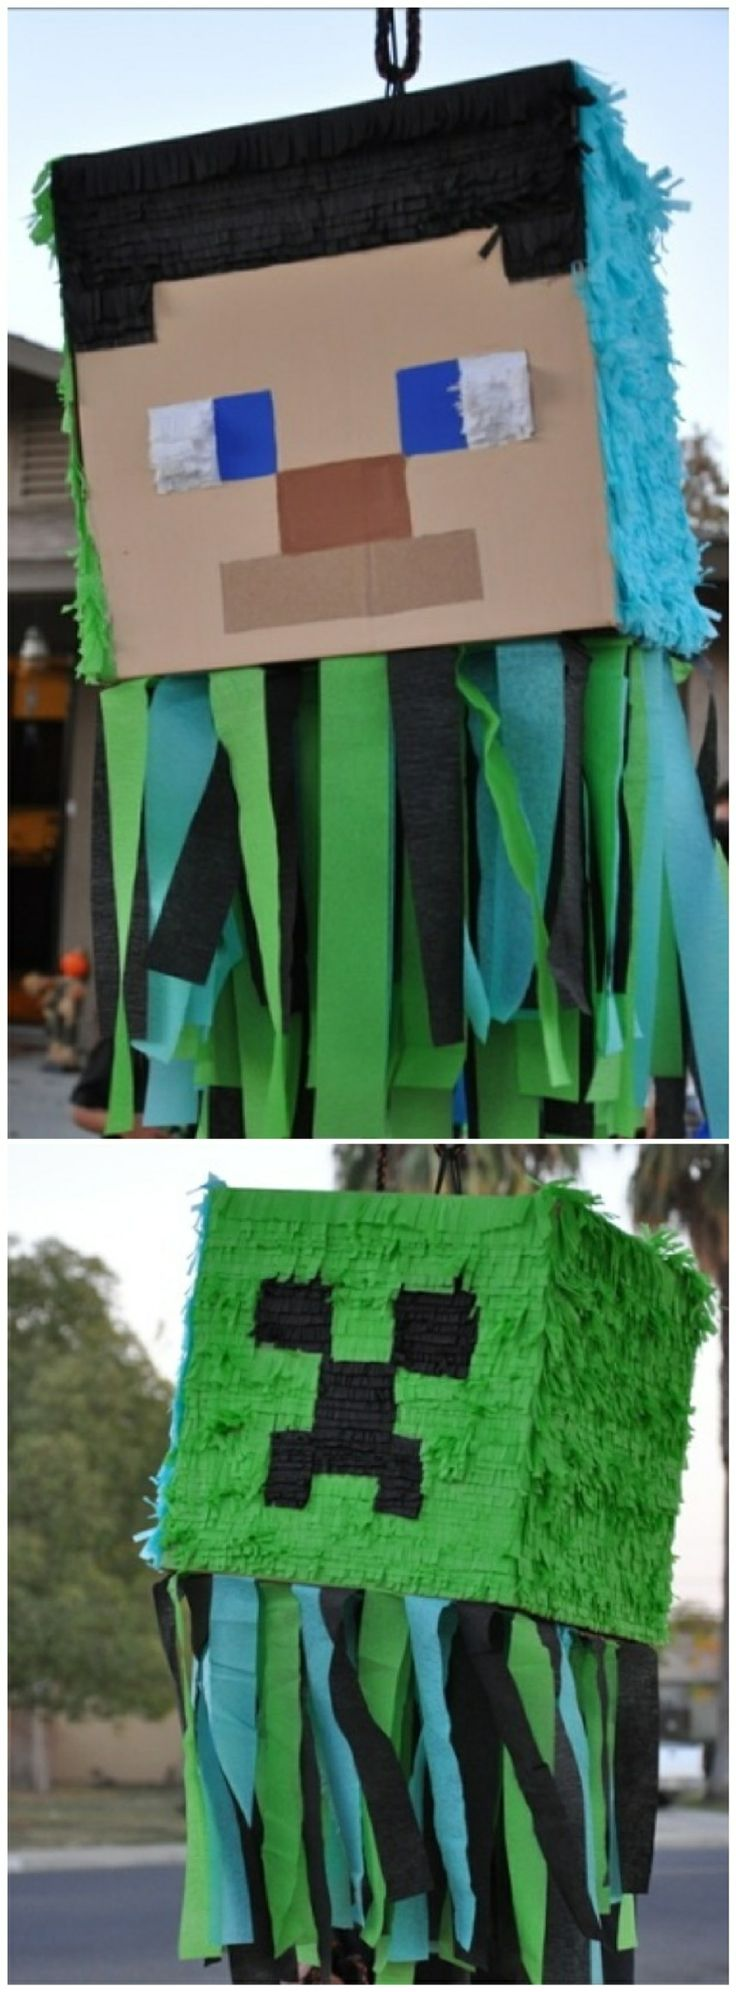 Double sided minecraft pinata for my sons birthday party.